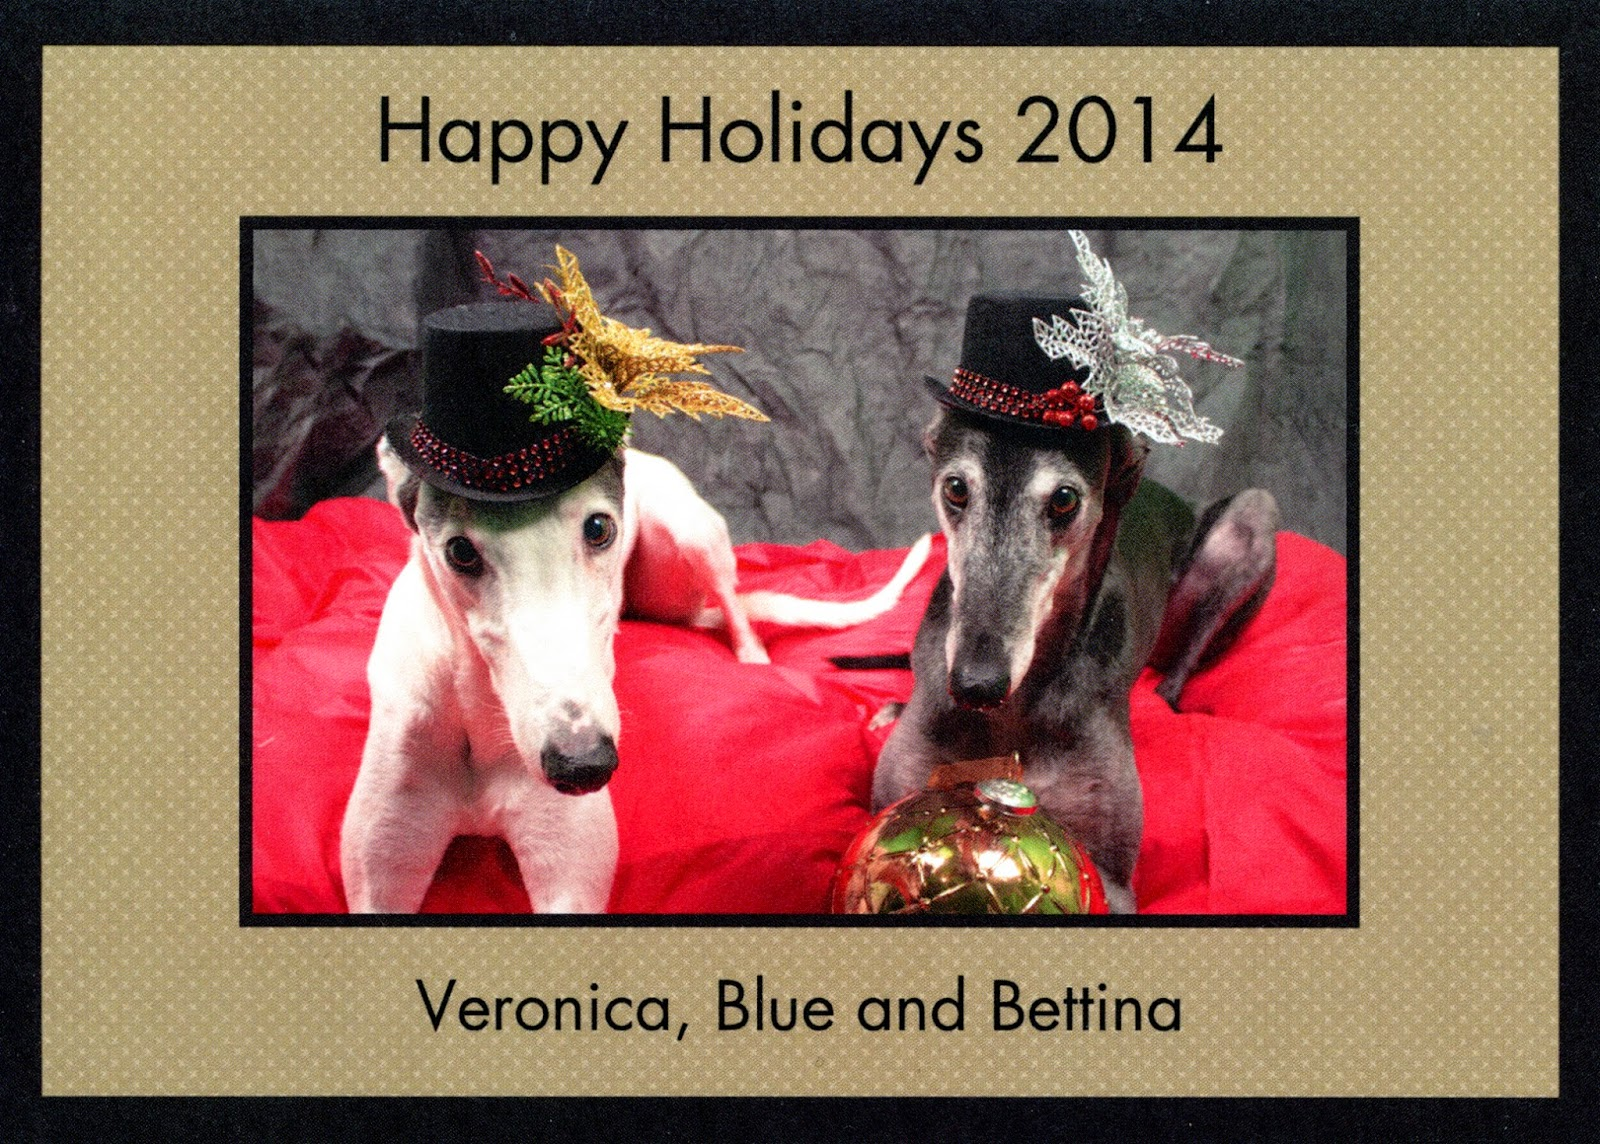 Happy Holidays from Blue and Bettina Greyhound